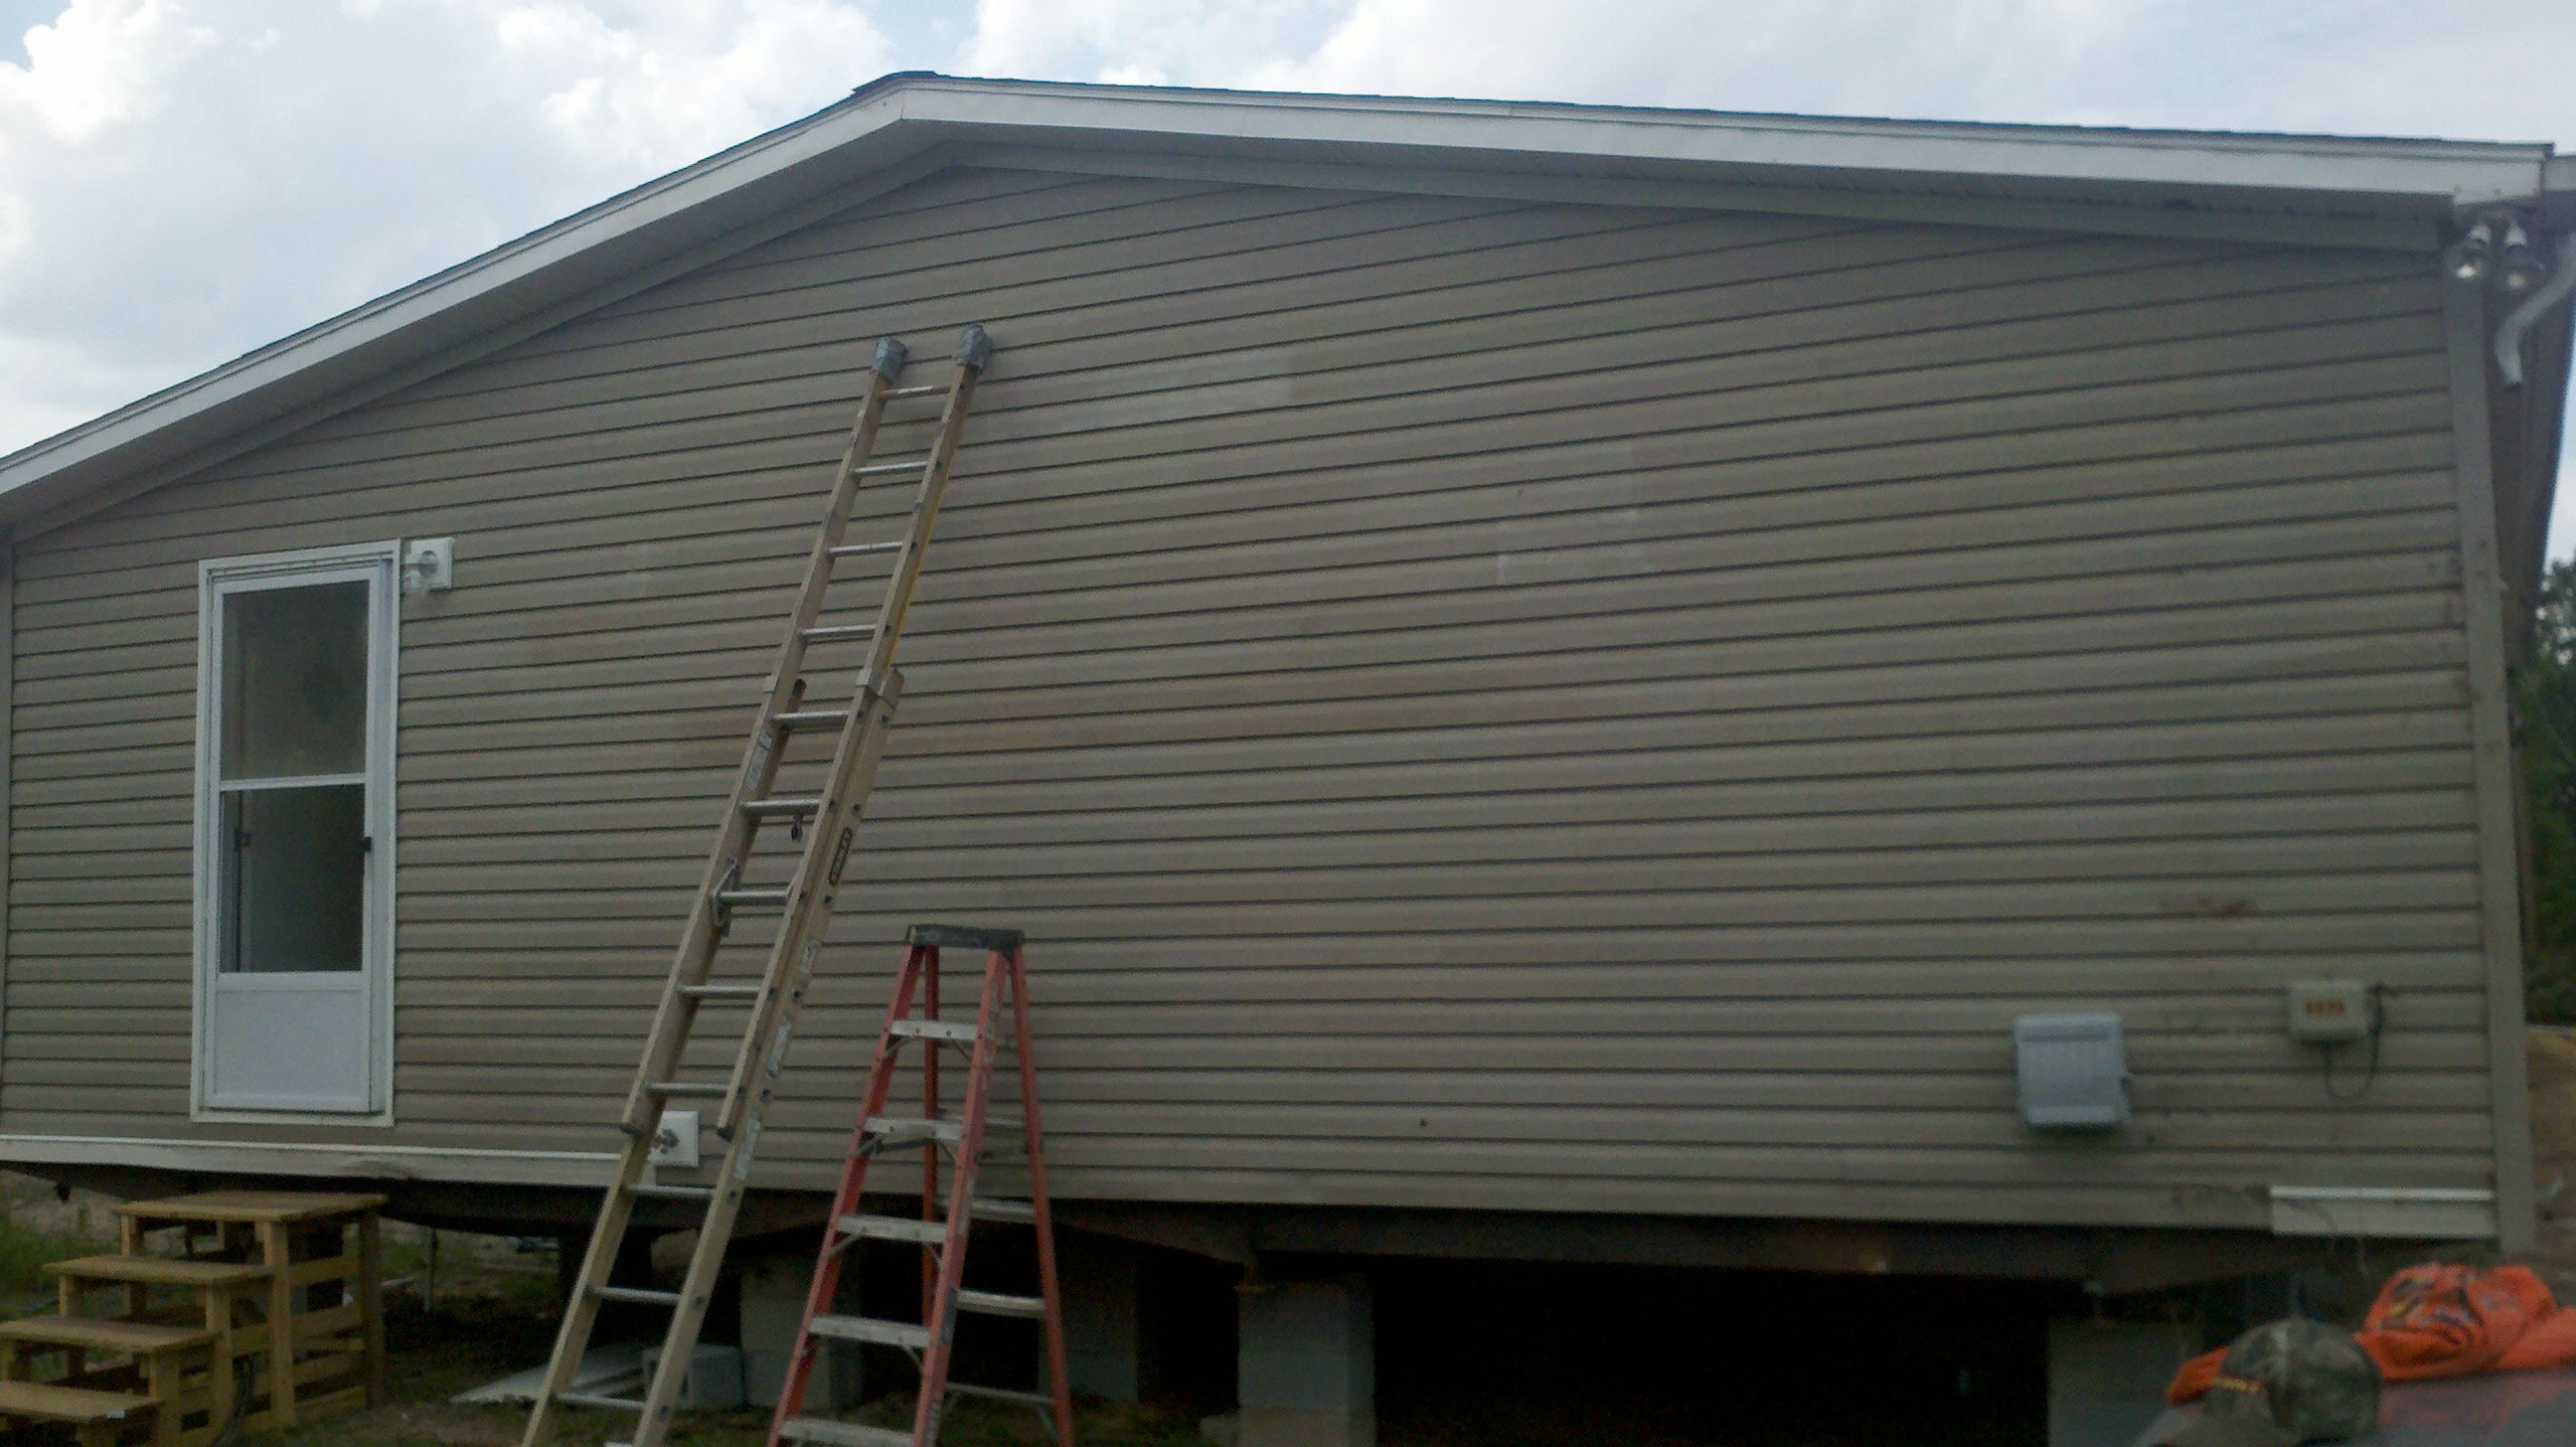 Siding done, house ready to have inside done then we can move in!!!